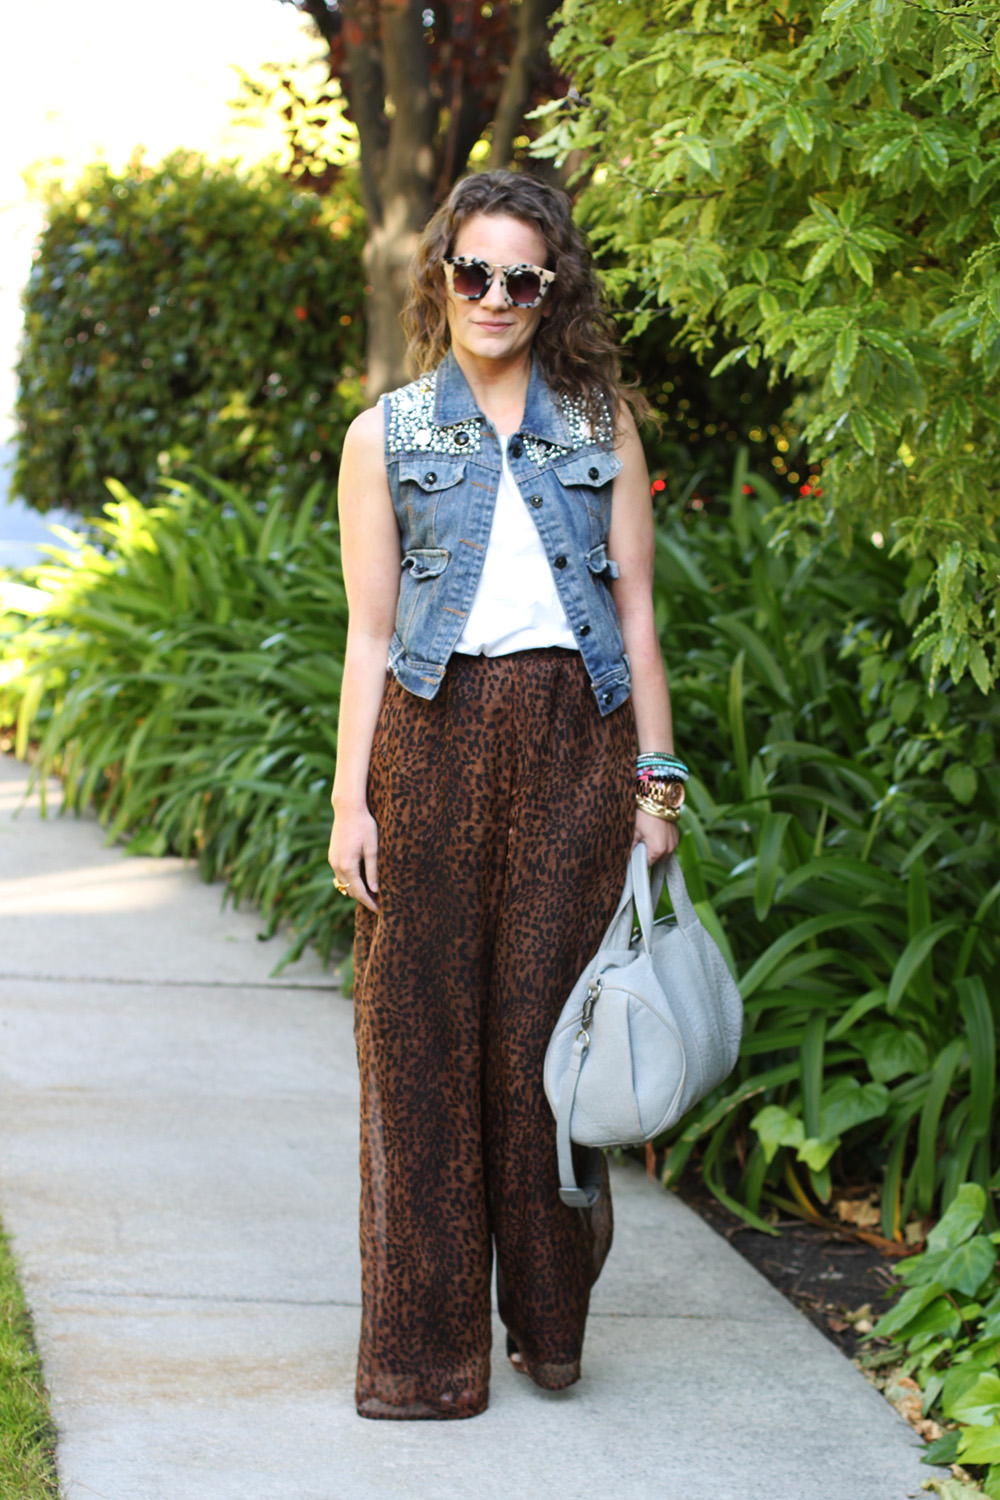 how to wear palazzo pants tip #2: chiffon or lightweight fabric